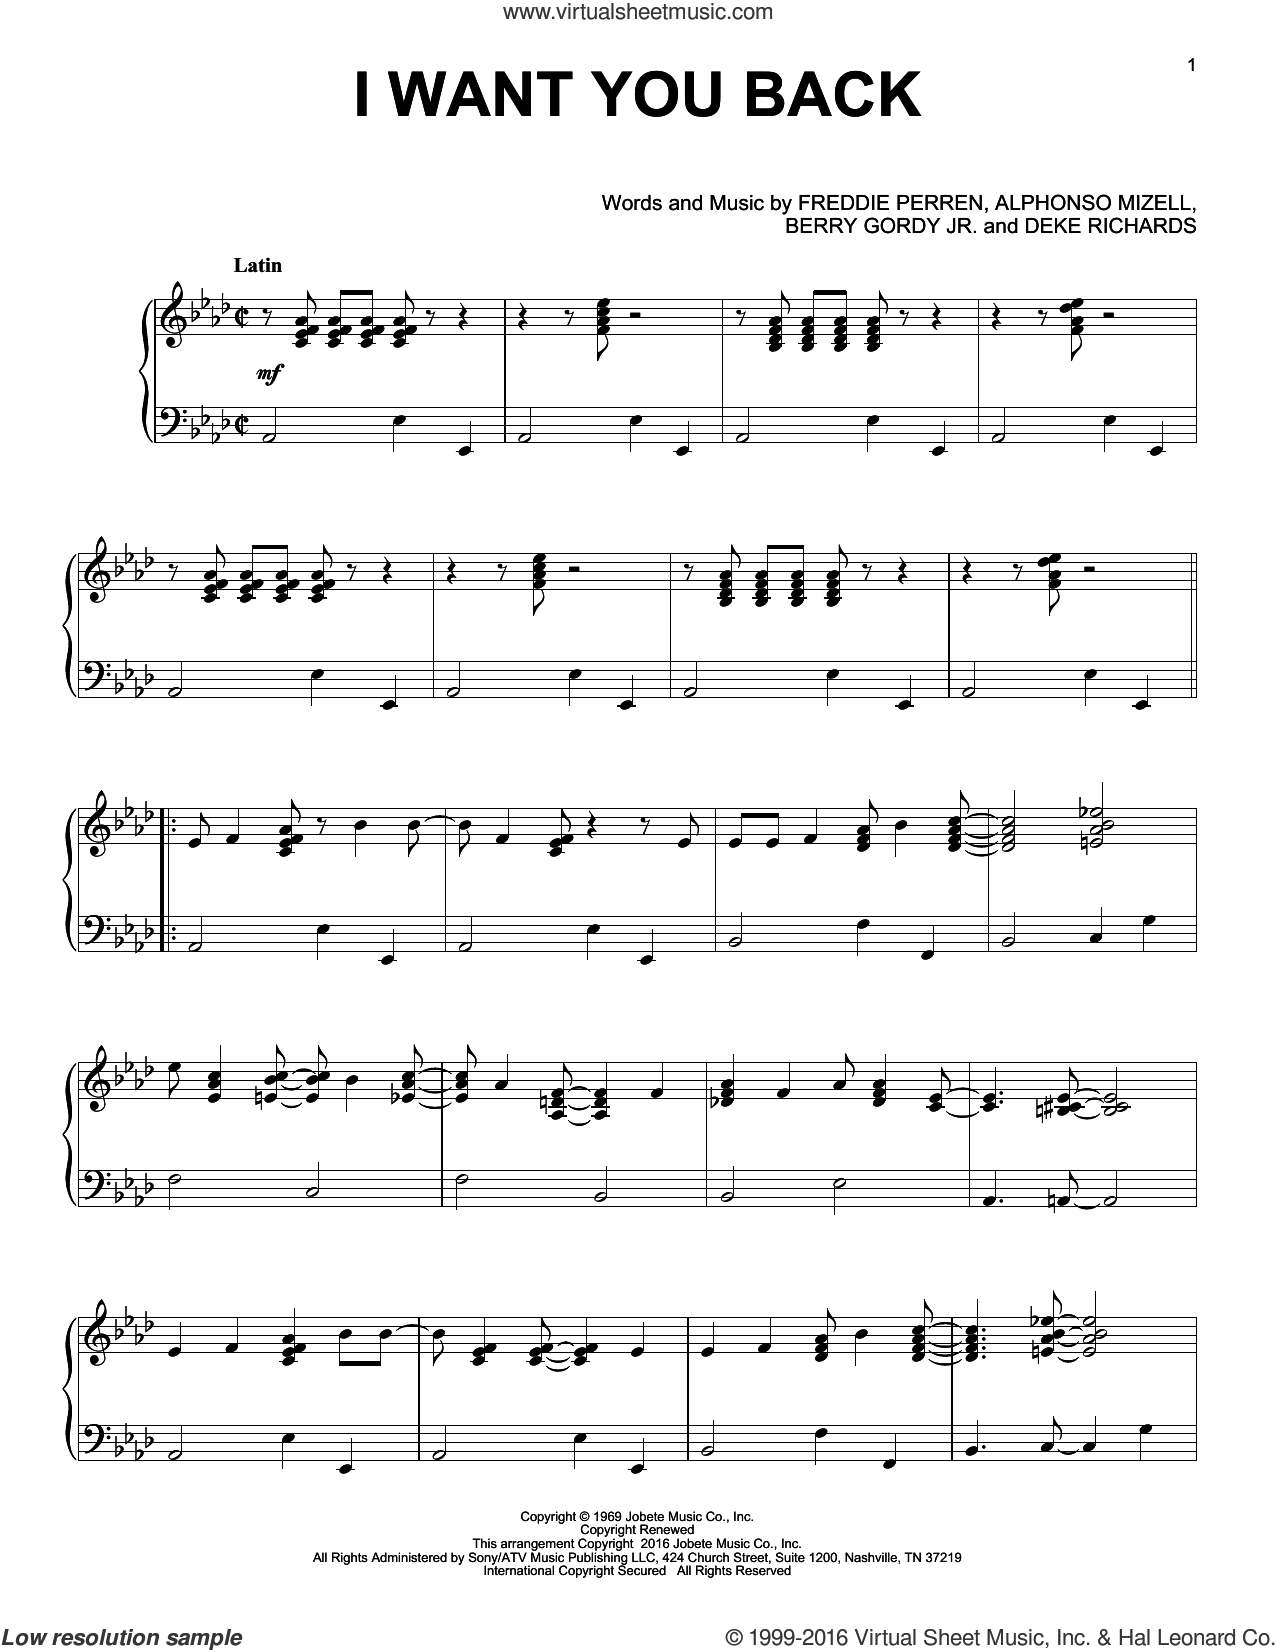 I Want You Back [Jazz version] sheet music for piano solo by The Jackson 5, Alphonso Mizell, Berry Gordy Jr., Deke Richards and Frederick Perren, intermediate skill level